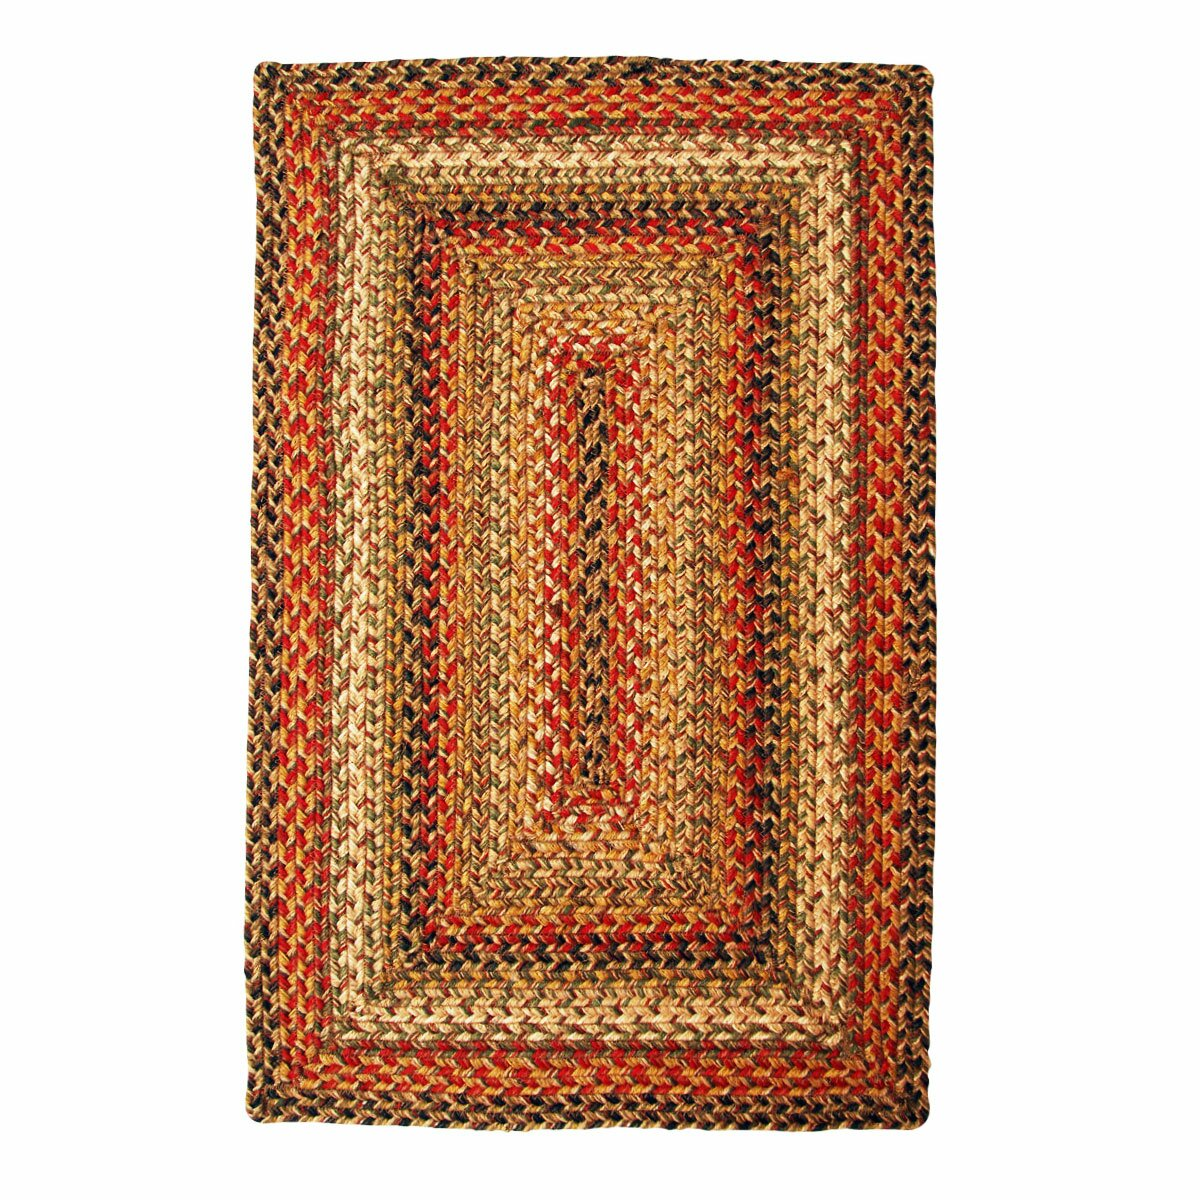 Homespice Decor Kingston Rug Reviews Wayfair